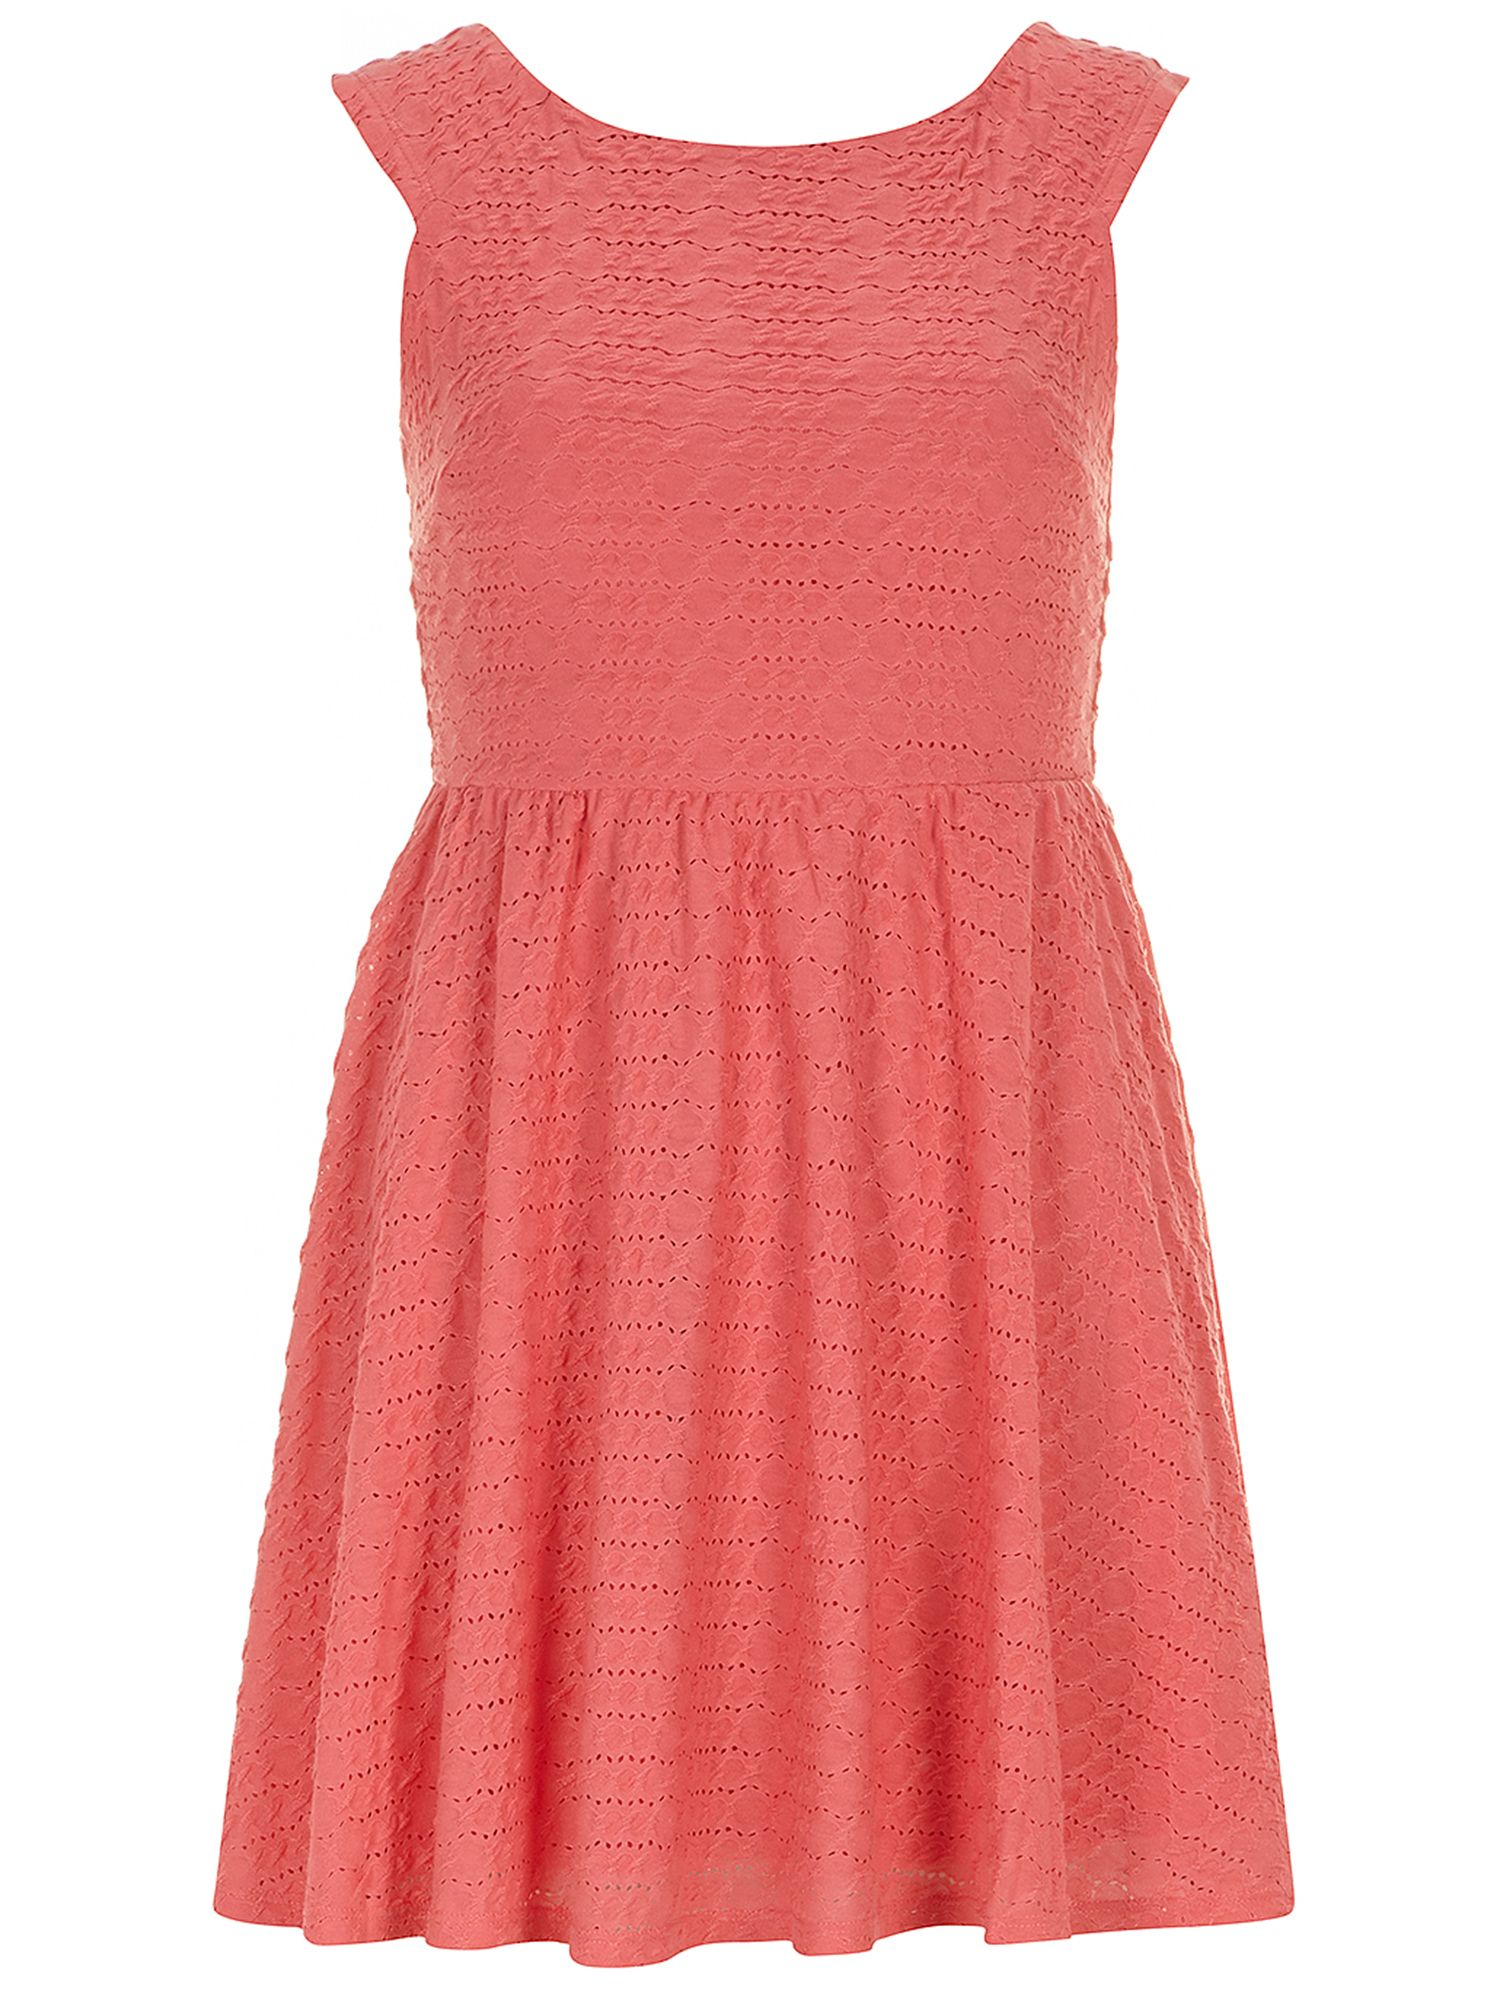 Petite ottoman textured dress